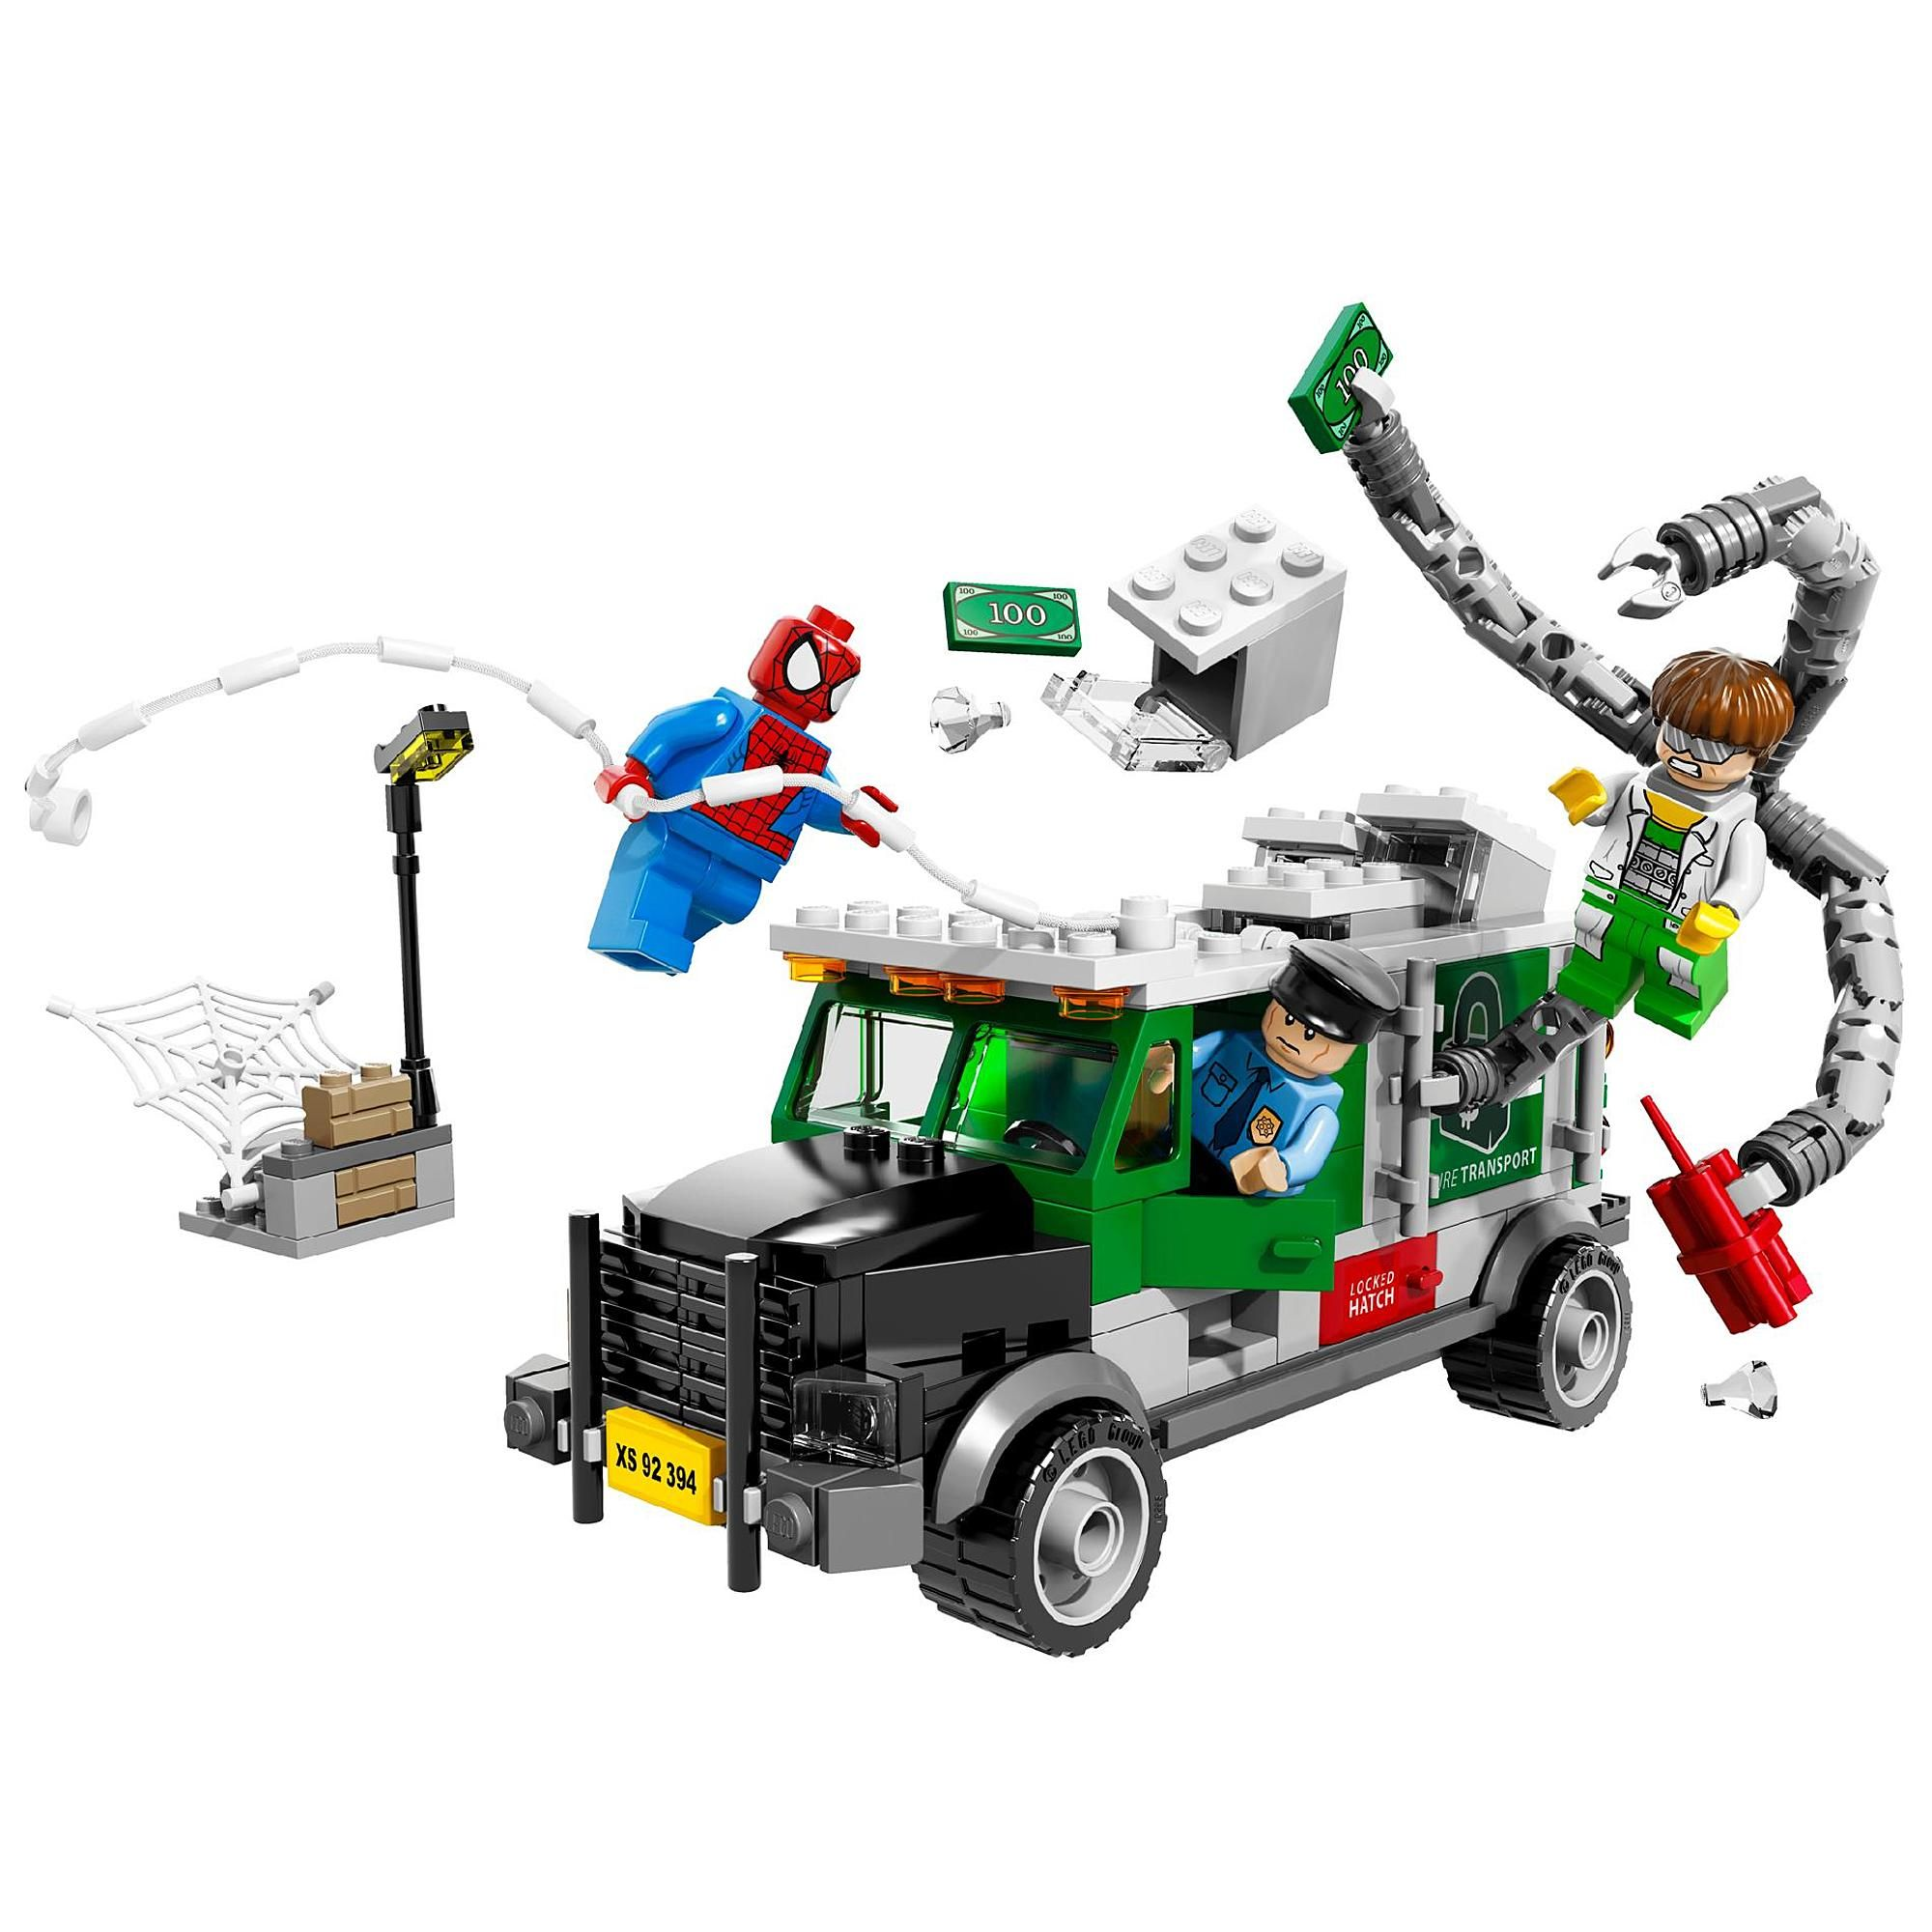 Foil the Doc Ock Truck Heist with heroic SpiderMan